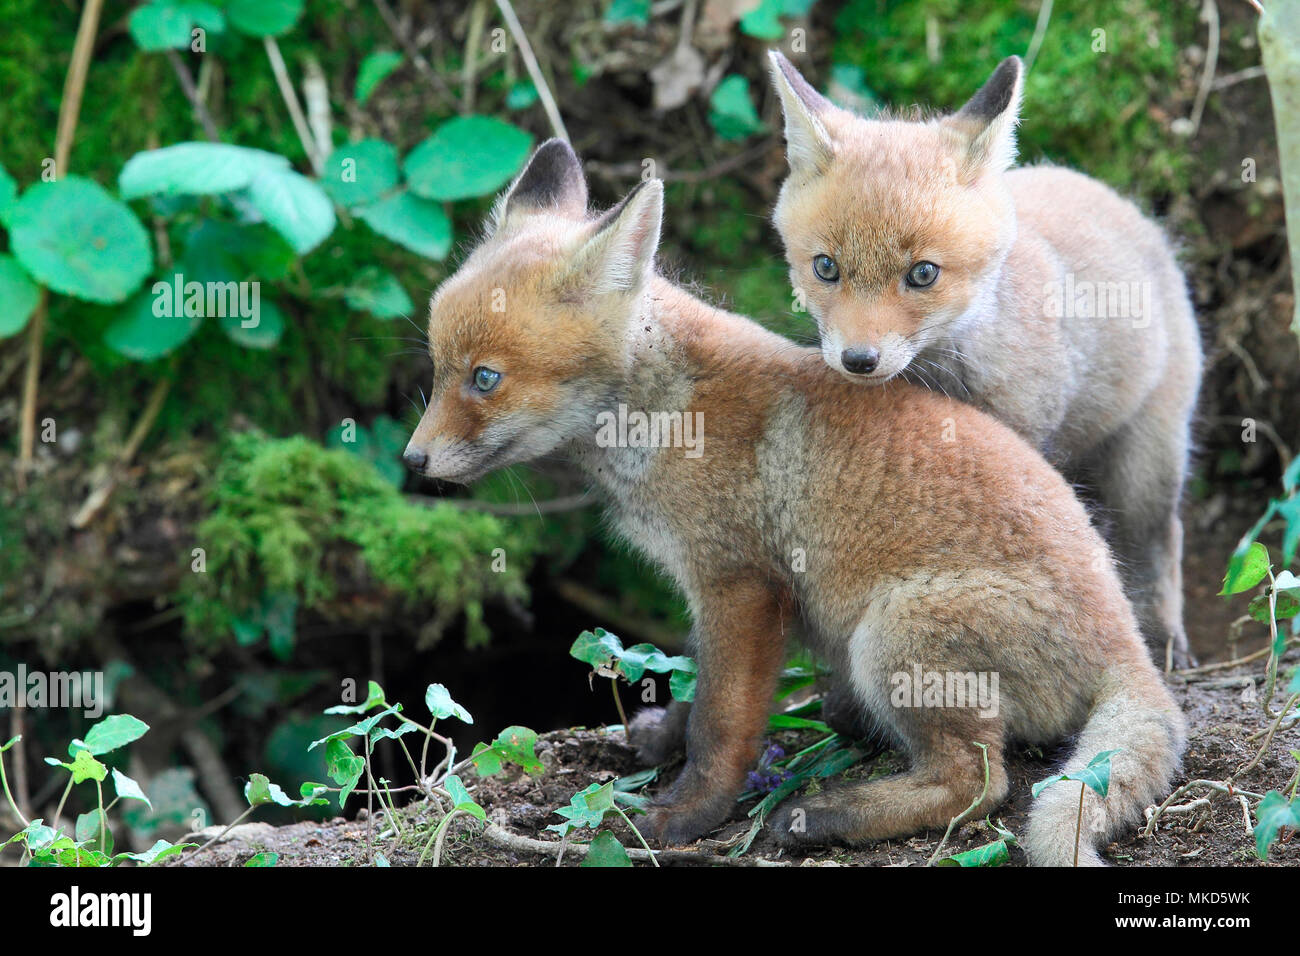 Red fox (Vulpes vulpes) youngs about 5 weeks old playing near the burrow, Brittany, France - Stock Image